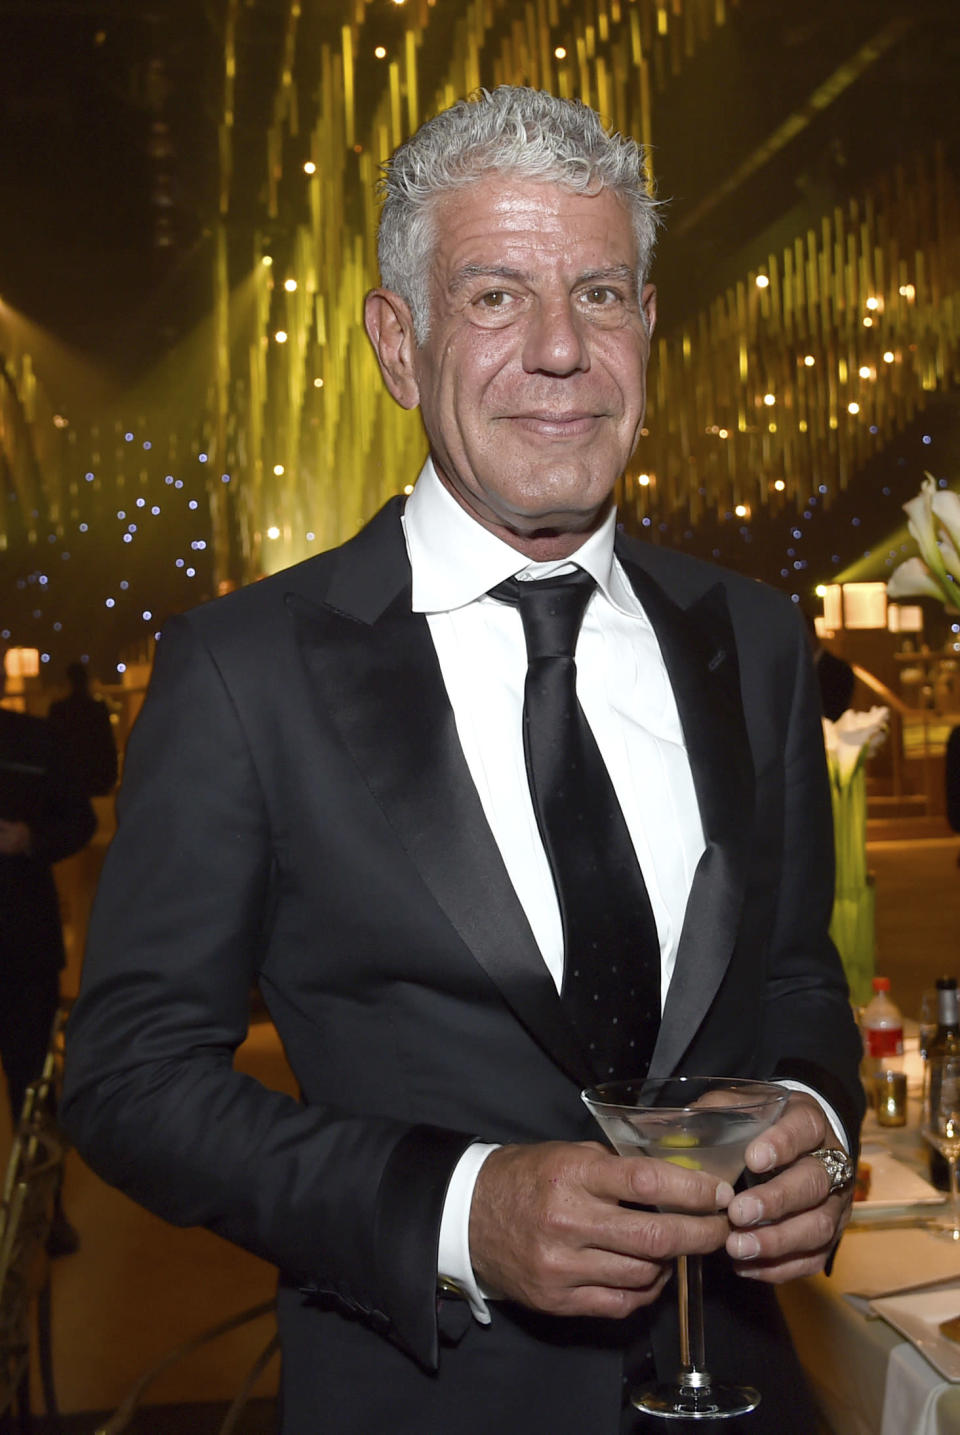 """FILE - In this Saturday, Sept. 9, 2017, file photo, Anthony Bourdain attends the Governors Ball during night one of the Creative Arts Emmy Awards at the Microsoft Theater in Los Angeles. The revelation that a documentary filmmaker used voice-cloning software to make the late chef Bourdain say words he never spoke has drawn criticism amid ethical concerns about use of the powerful technology. The movie """"Roadrunner: A Film About Anthony Bourdain"""" appeared in cinemas Friday, July 16, 2021, and mostly features real footage of the beloved celebrity chef and globe-trotting television host before he died in 2018. (Photo by Richard Shotwell/Invision/AP, File)"""